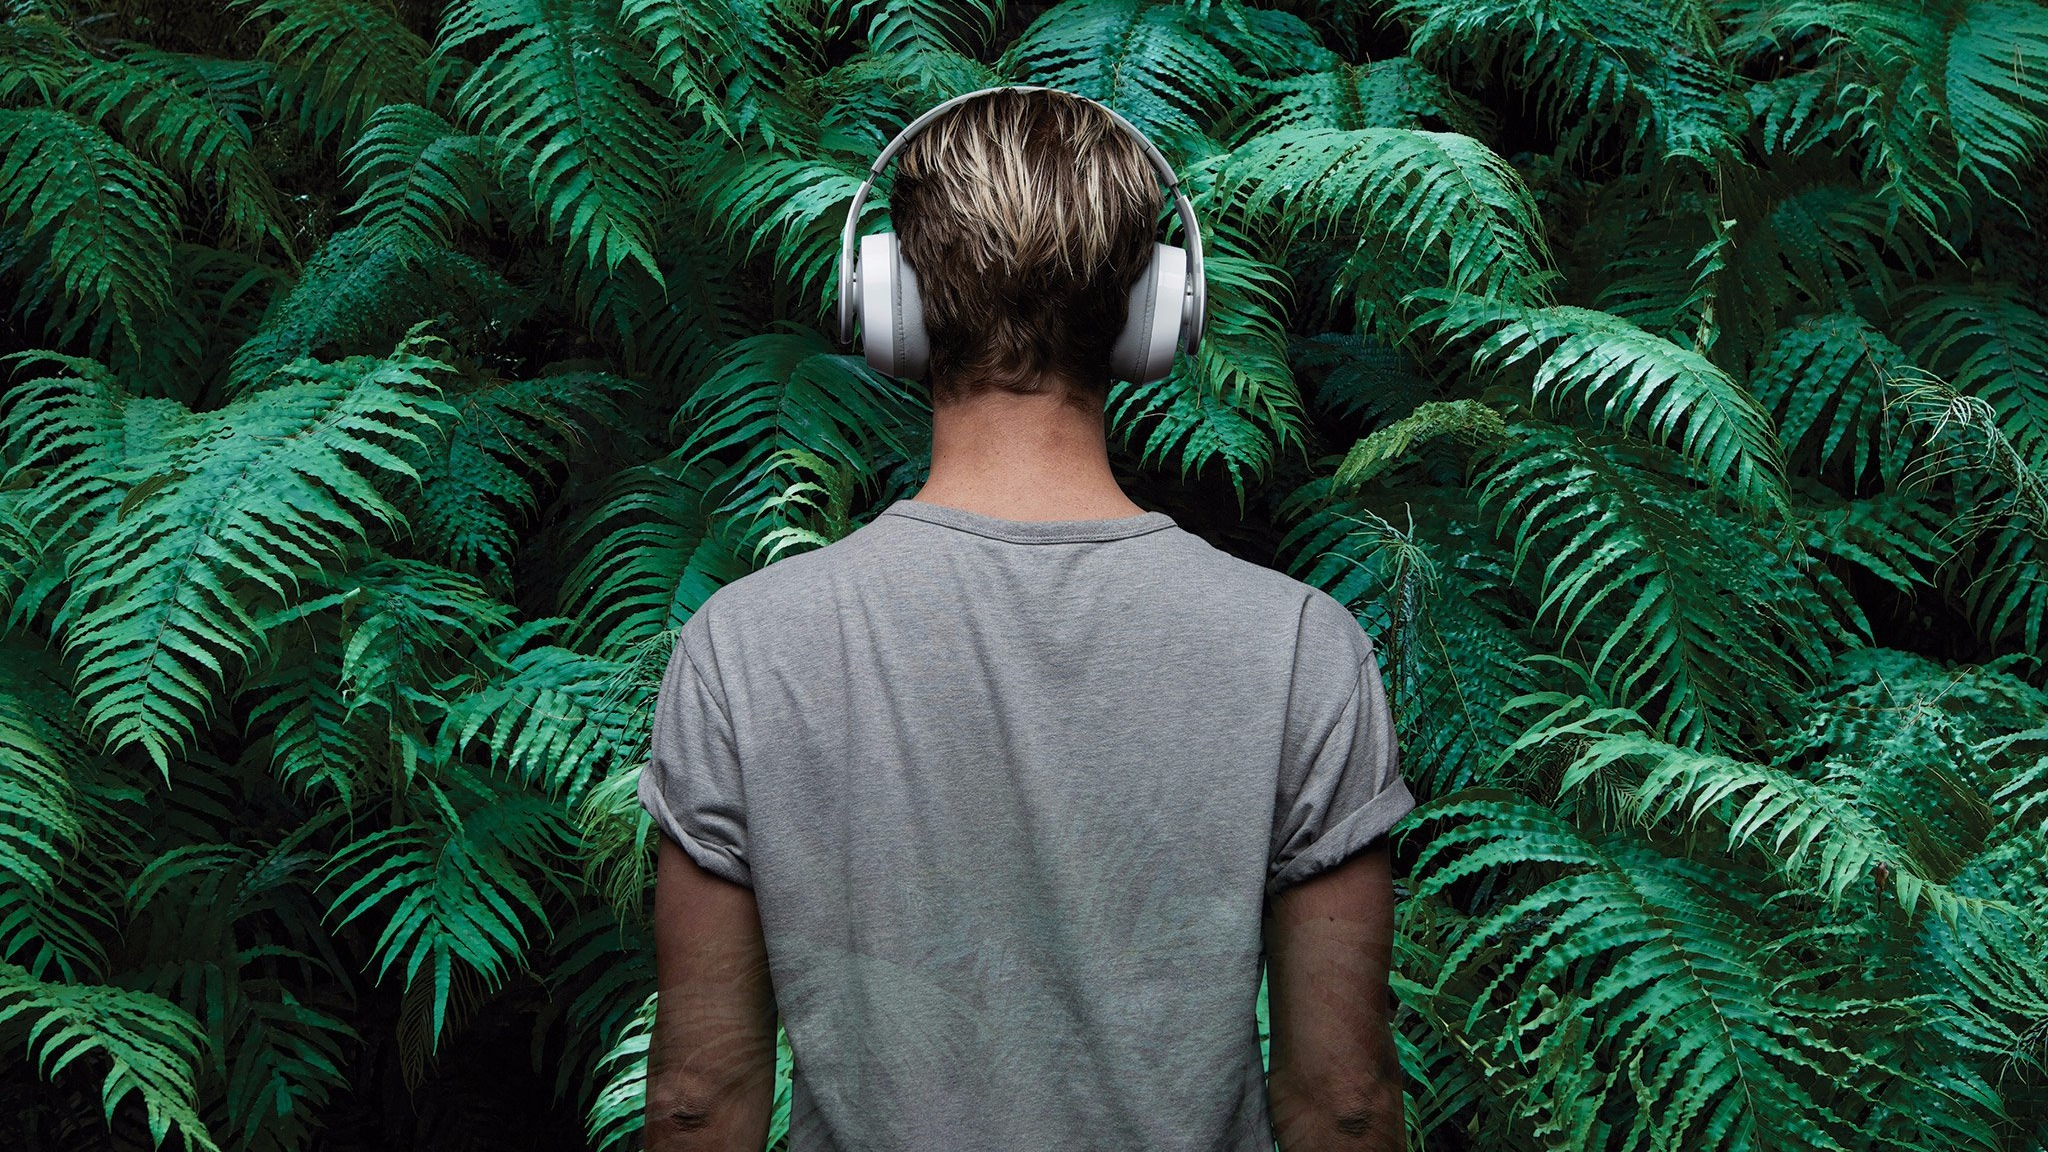 A man wearing headphones faces away from the camera. He looks out into a green jungle.